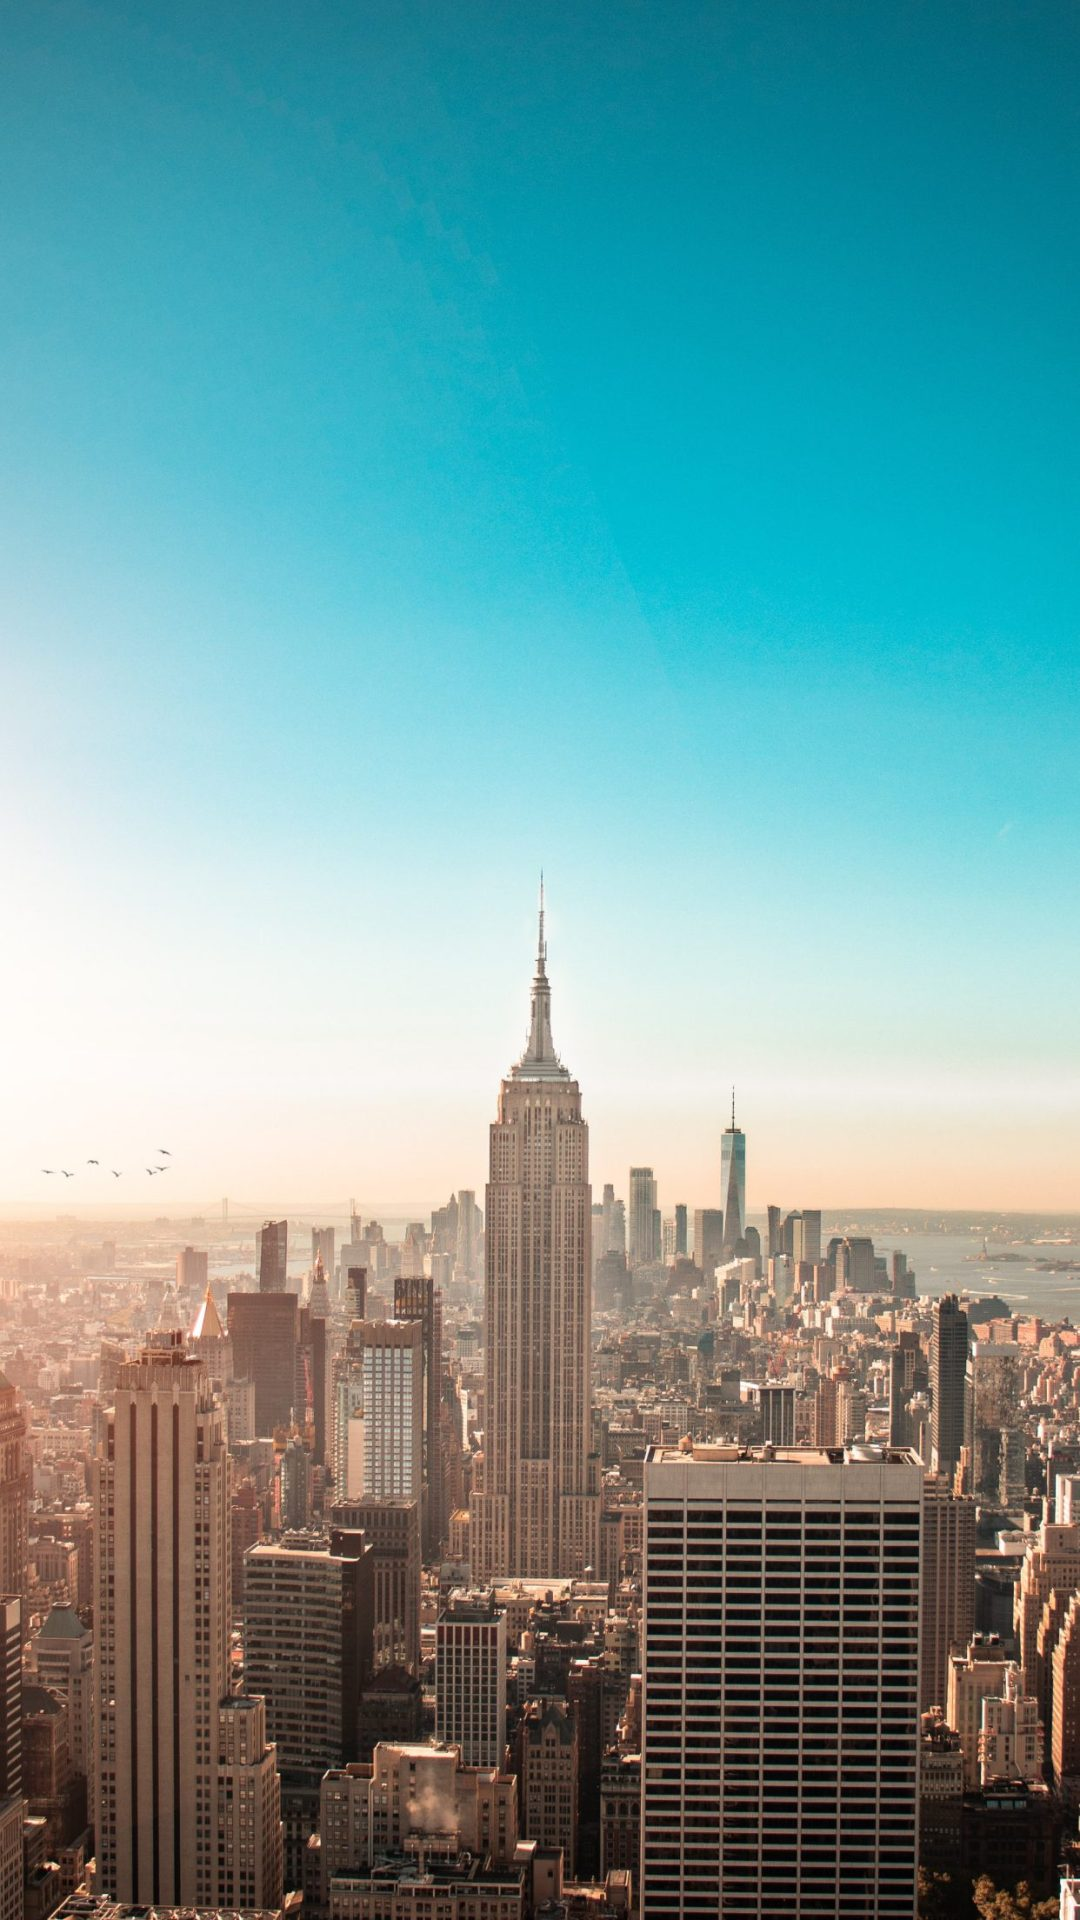 Beautiful free New York wallpaper for iPhone with Empire State building